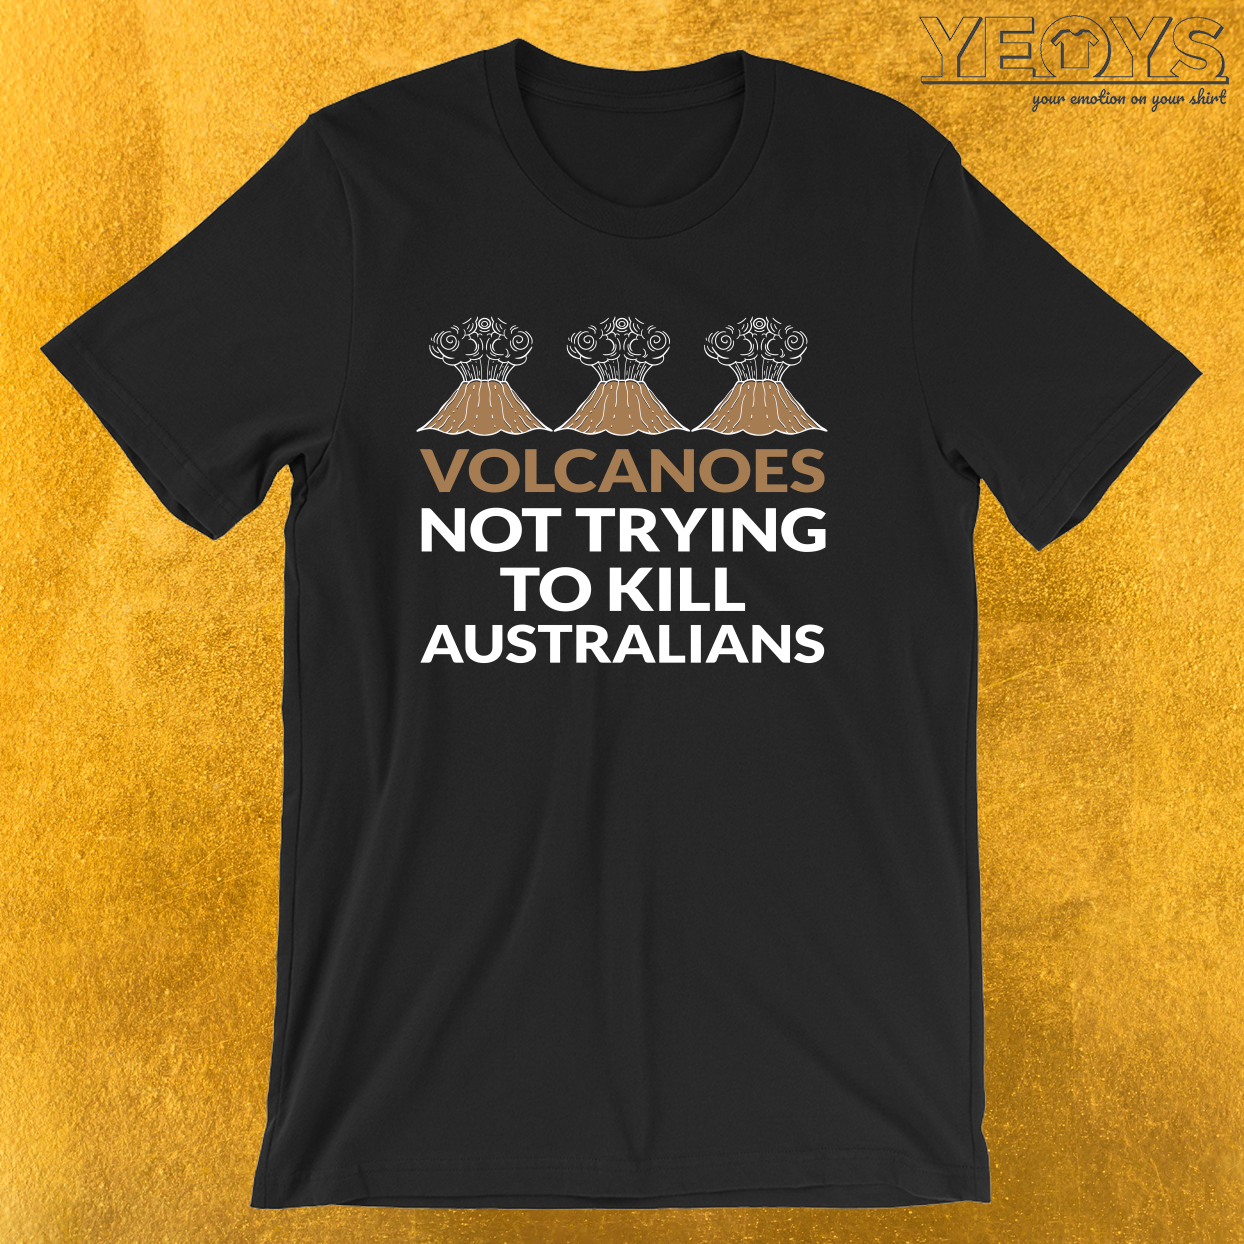 Volcanoes Not Trying To Kill Australians – Funny Volcano Tee